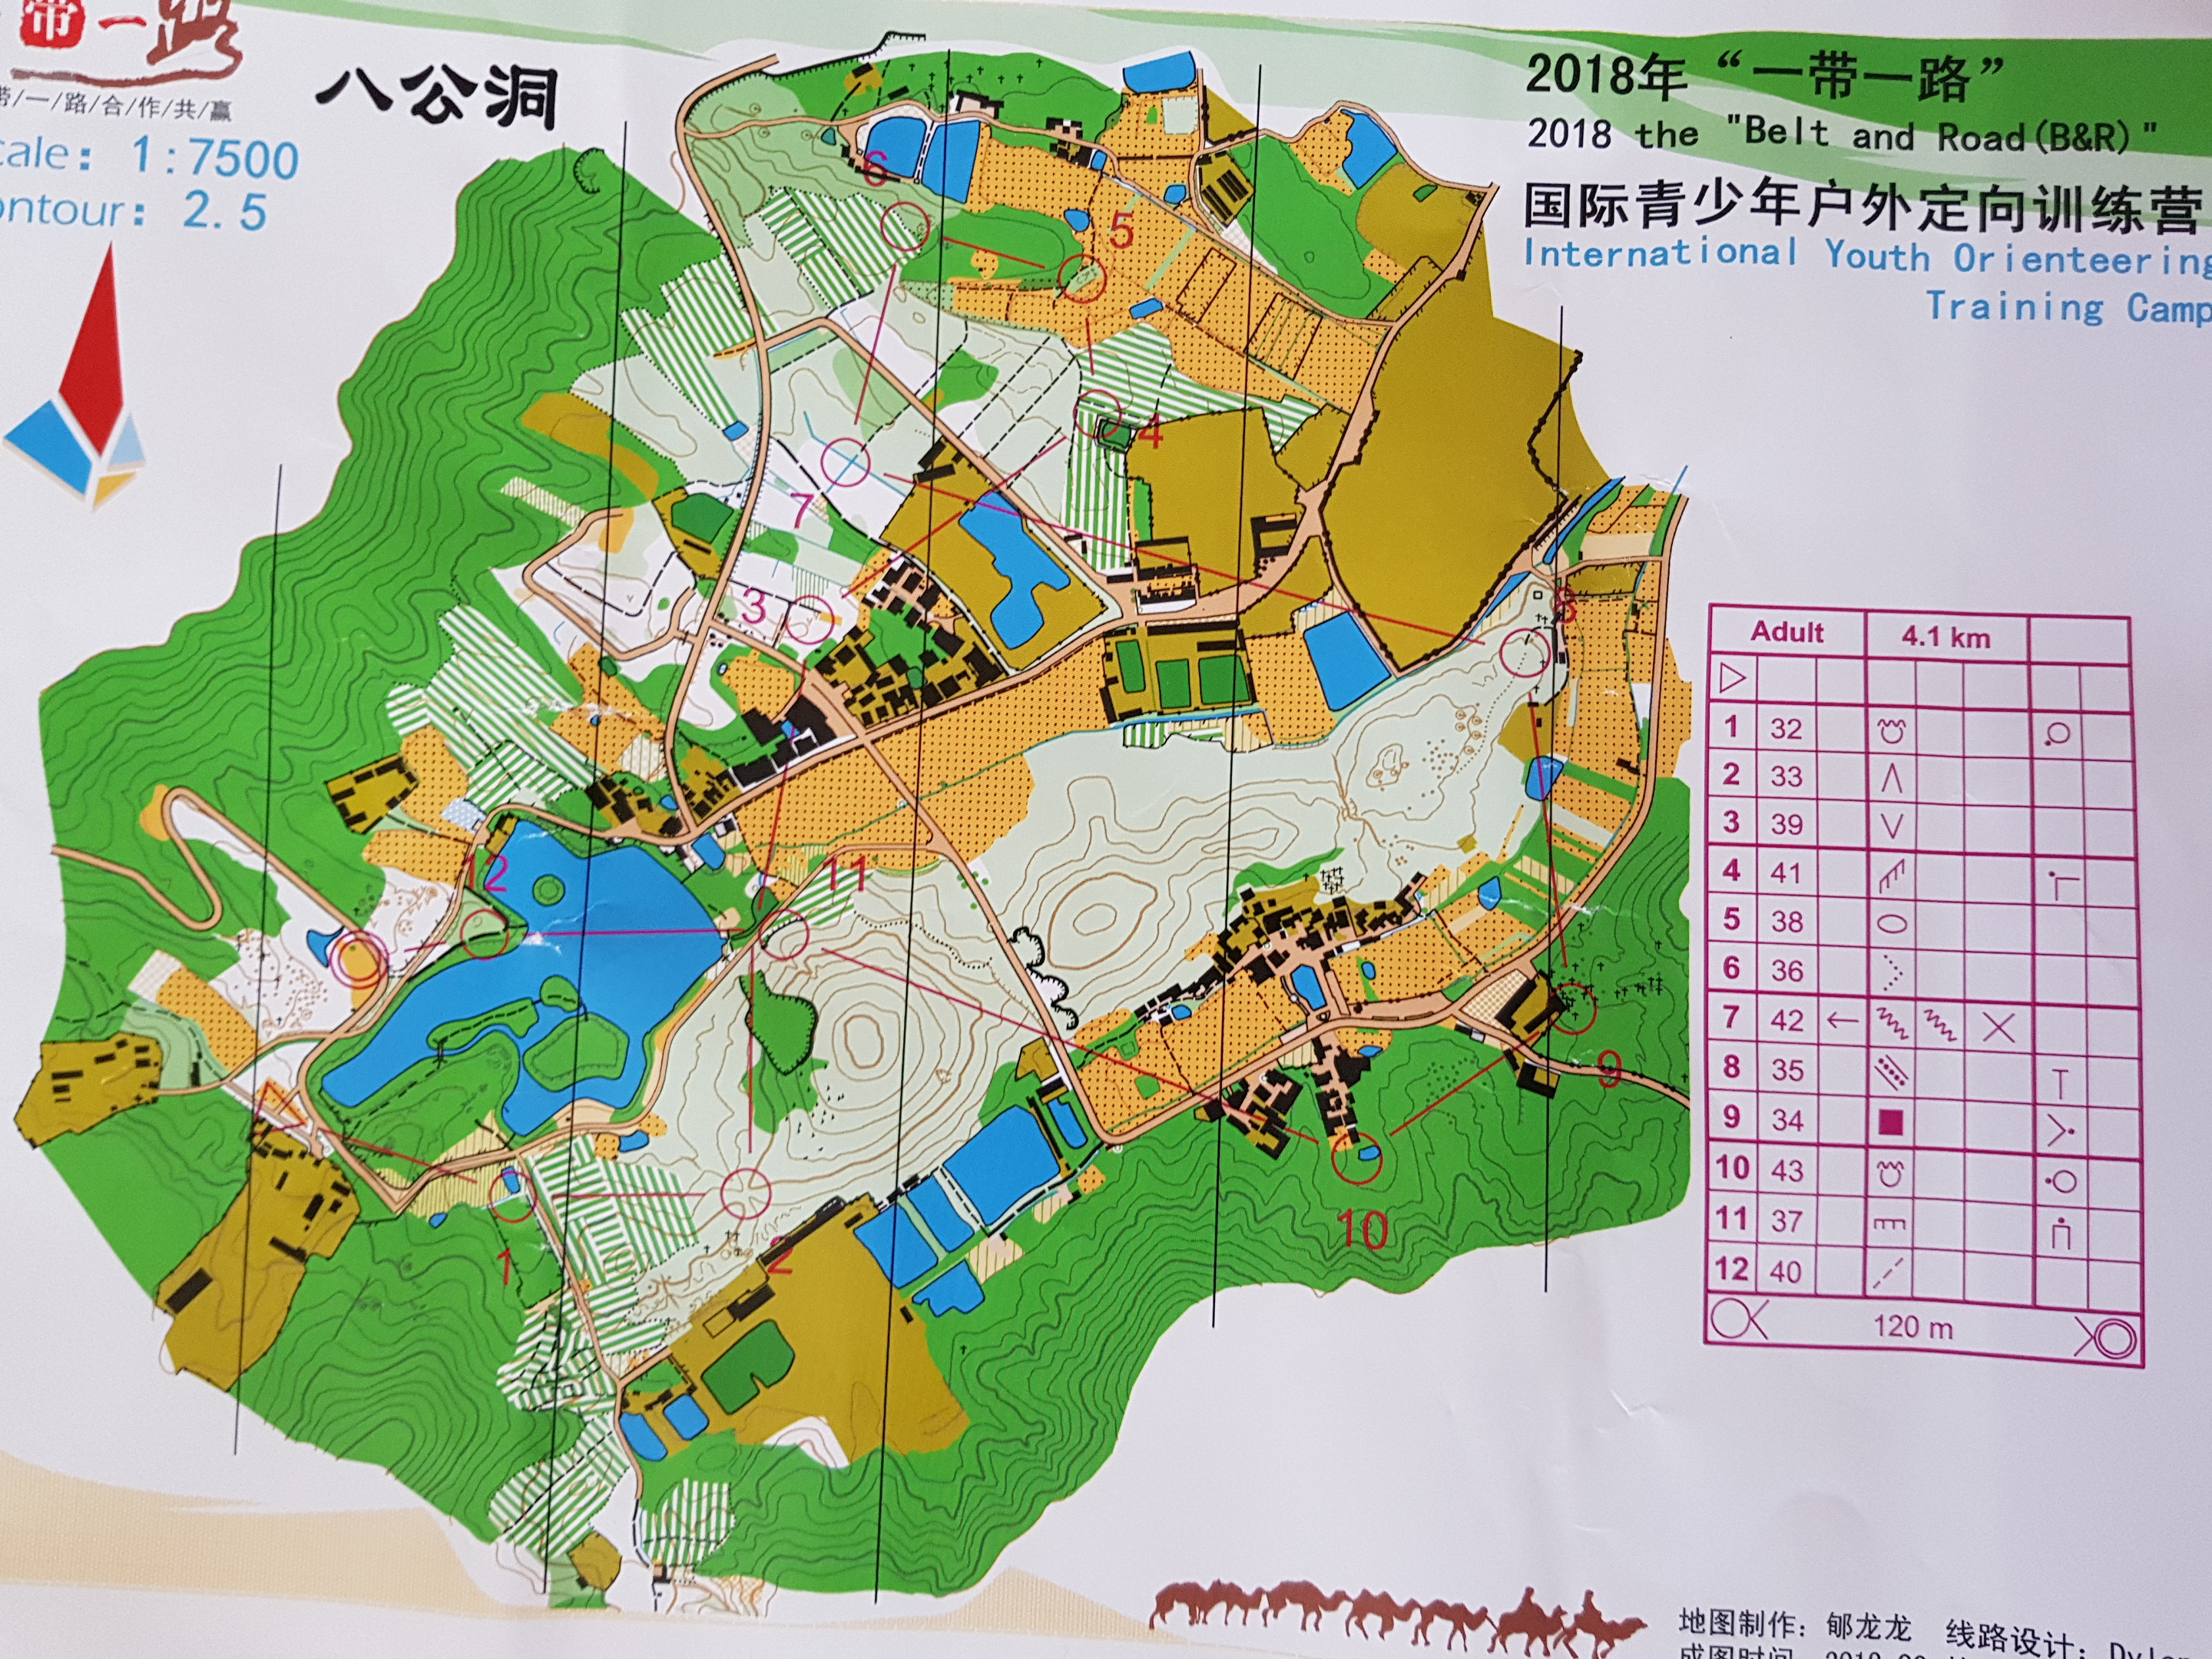 Belt and Road International Youth Orienteering Camp (28.10.2018)